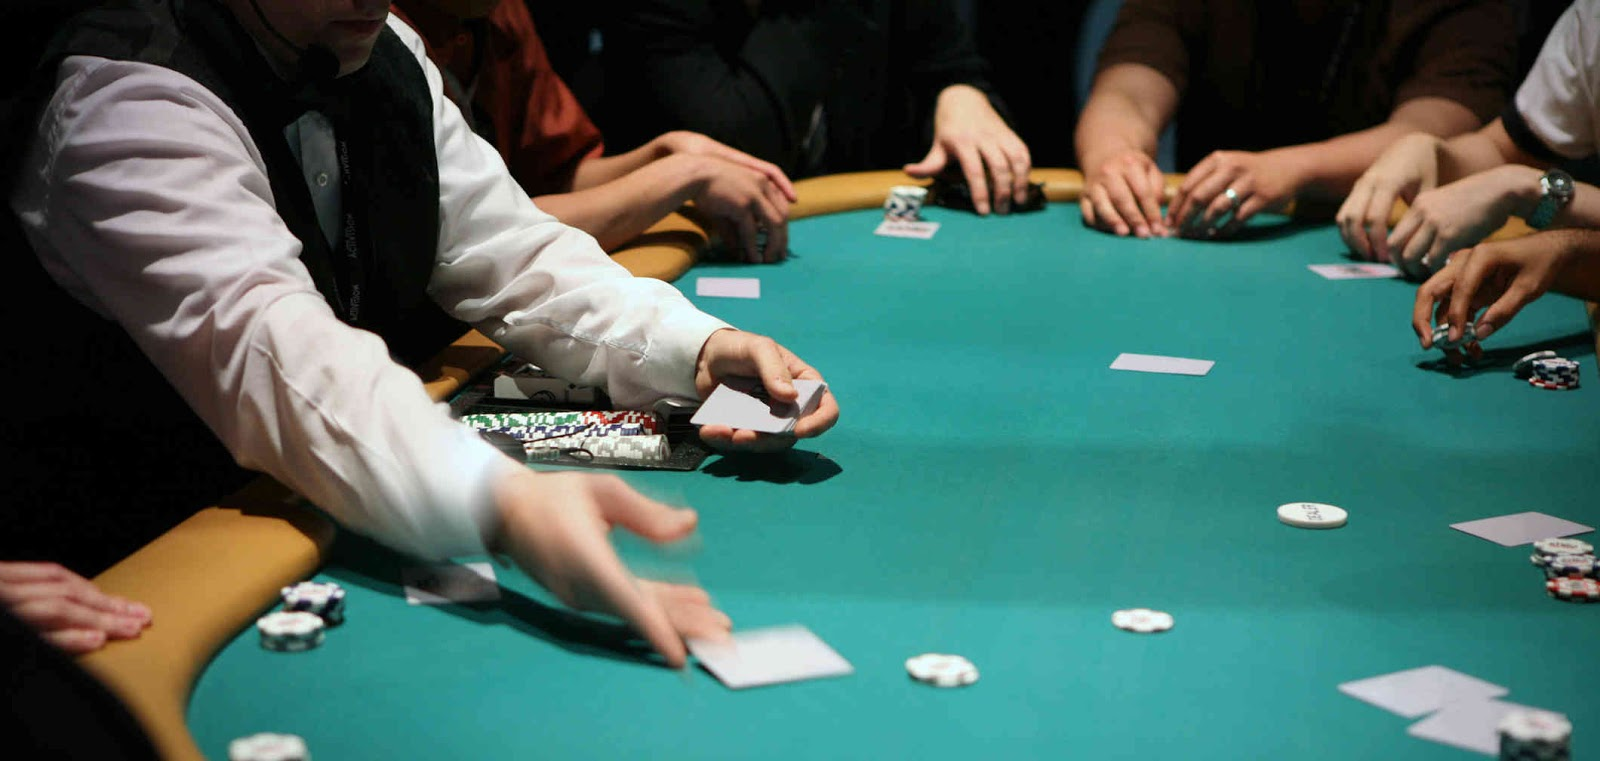 Situs Qq Domino Dan Qq Online Teraman 2018 A Deadly Mistake Uncovered On Poker Games And How To Avoid It